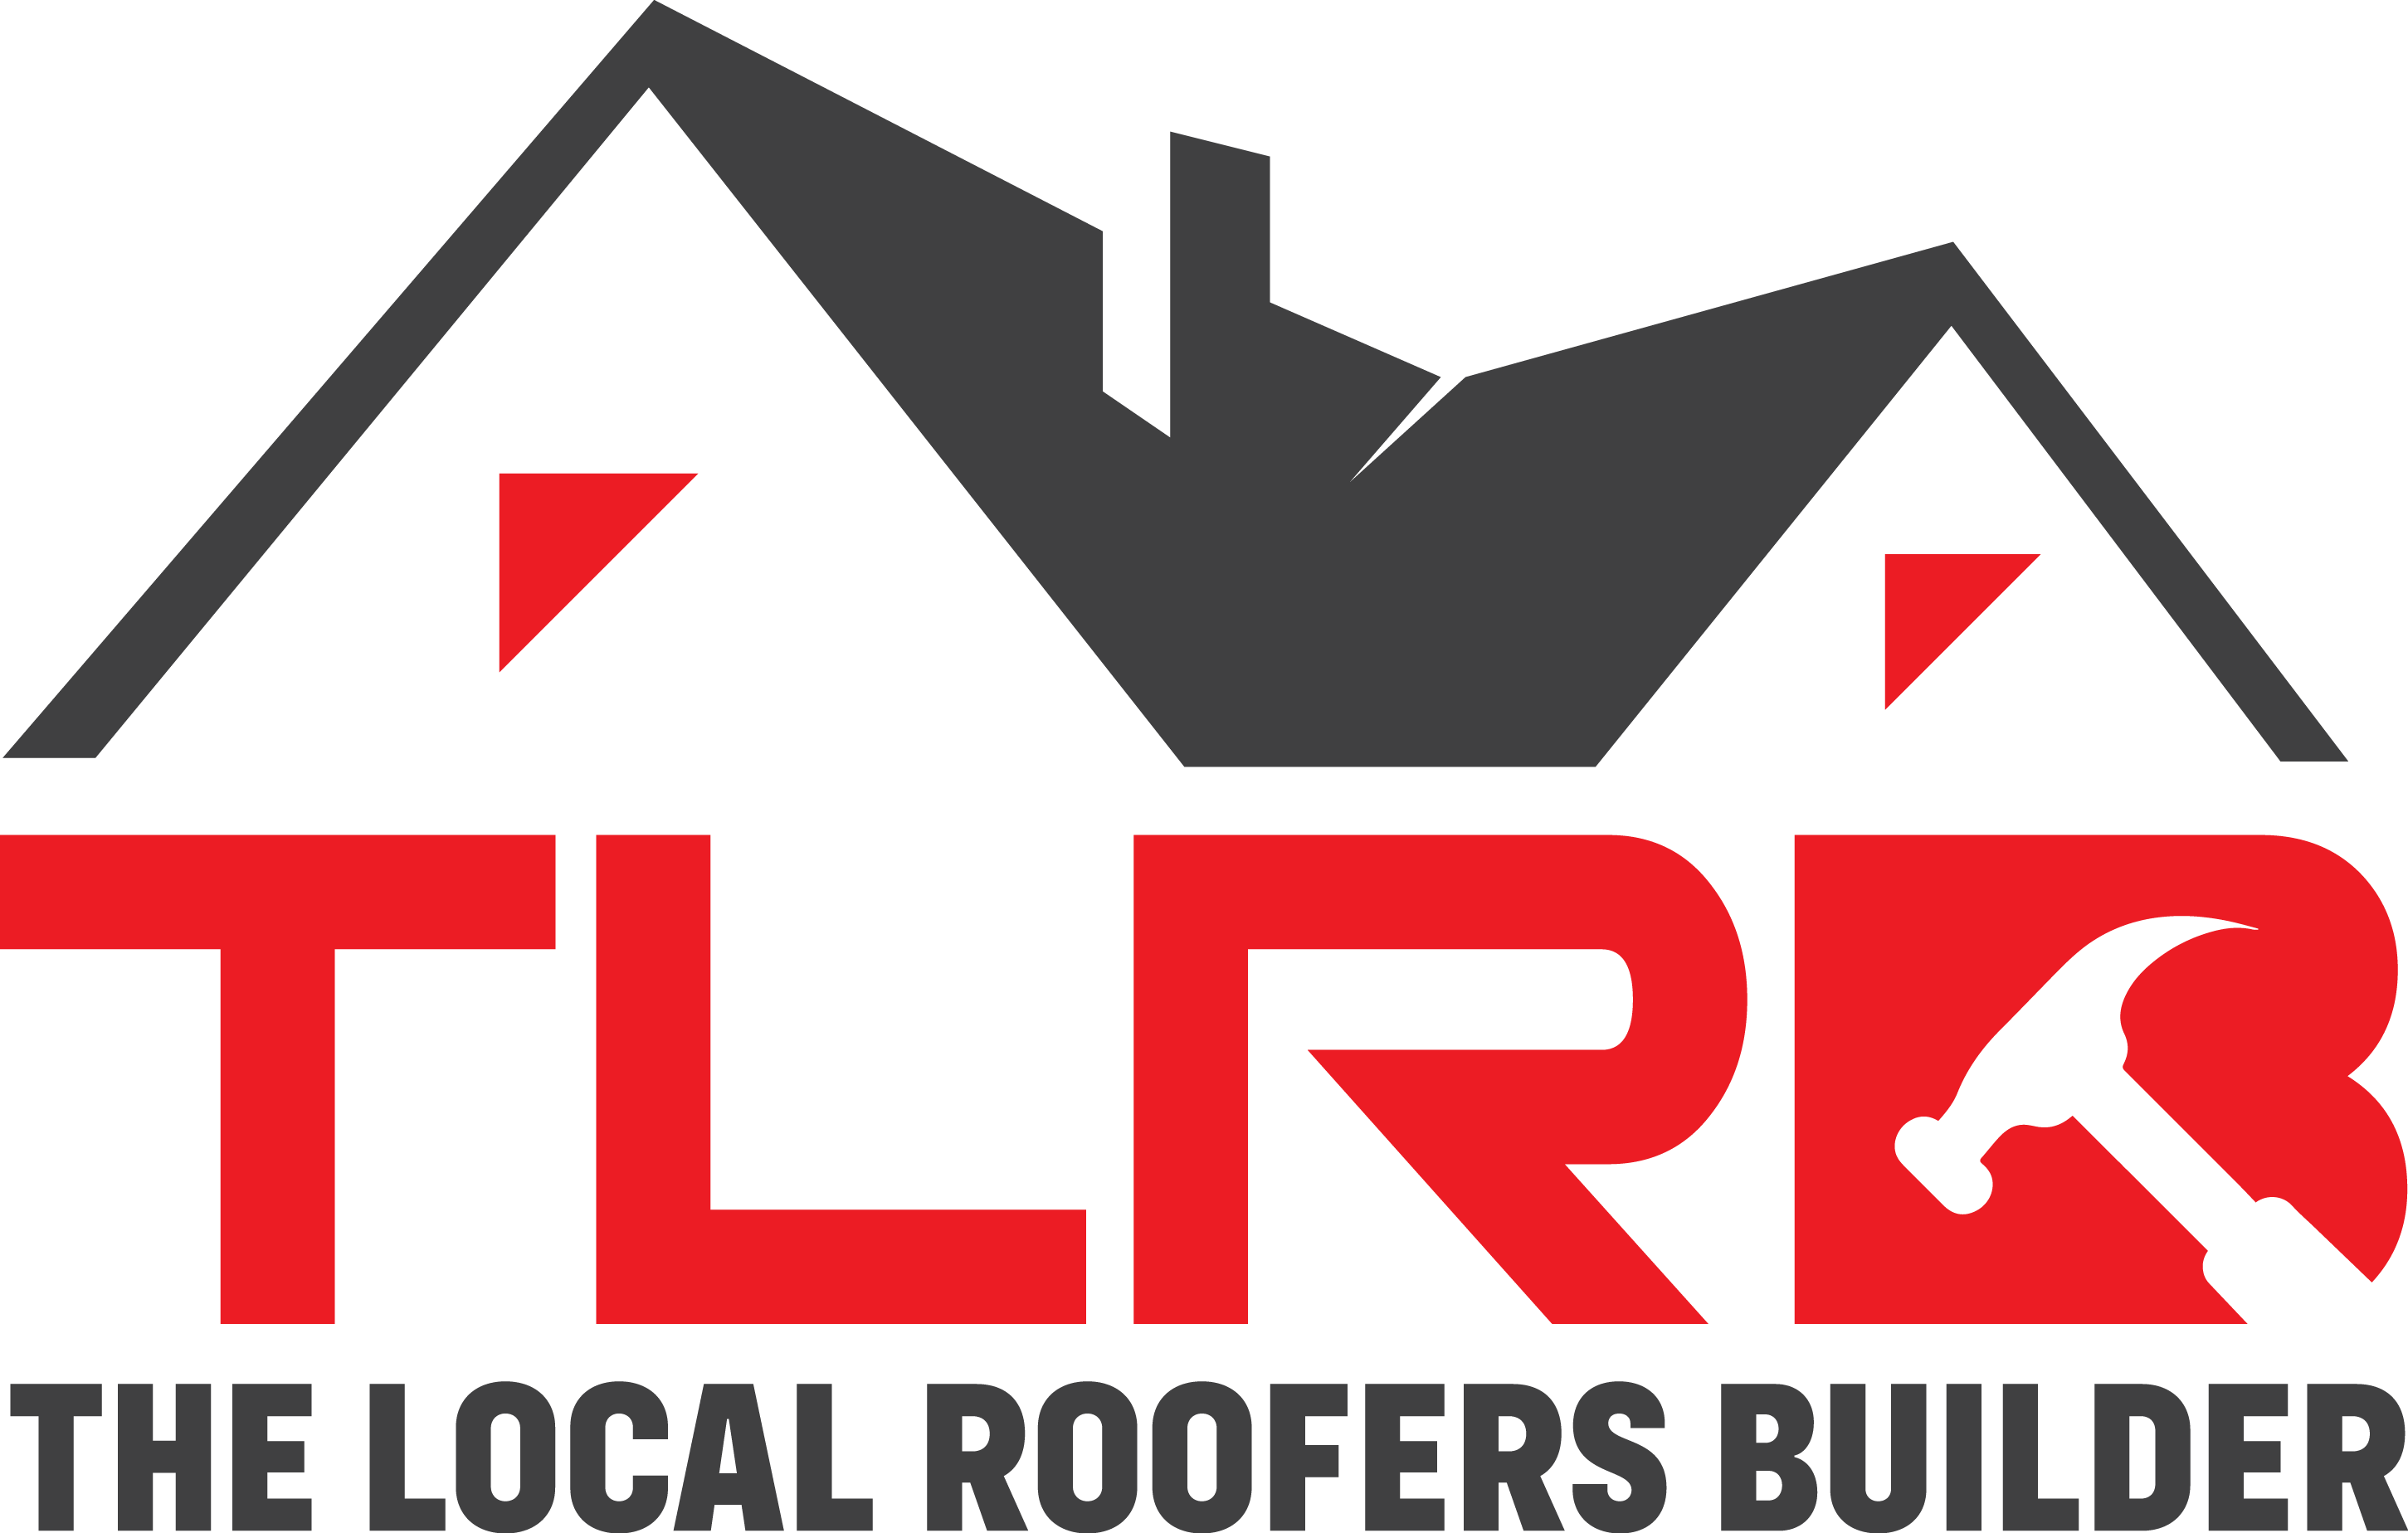 The Local Roofers Builder